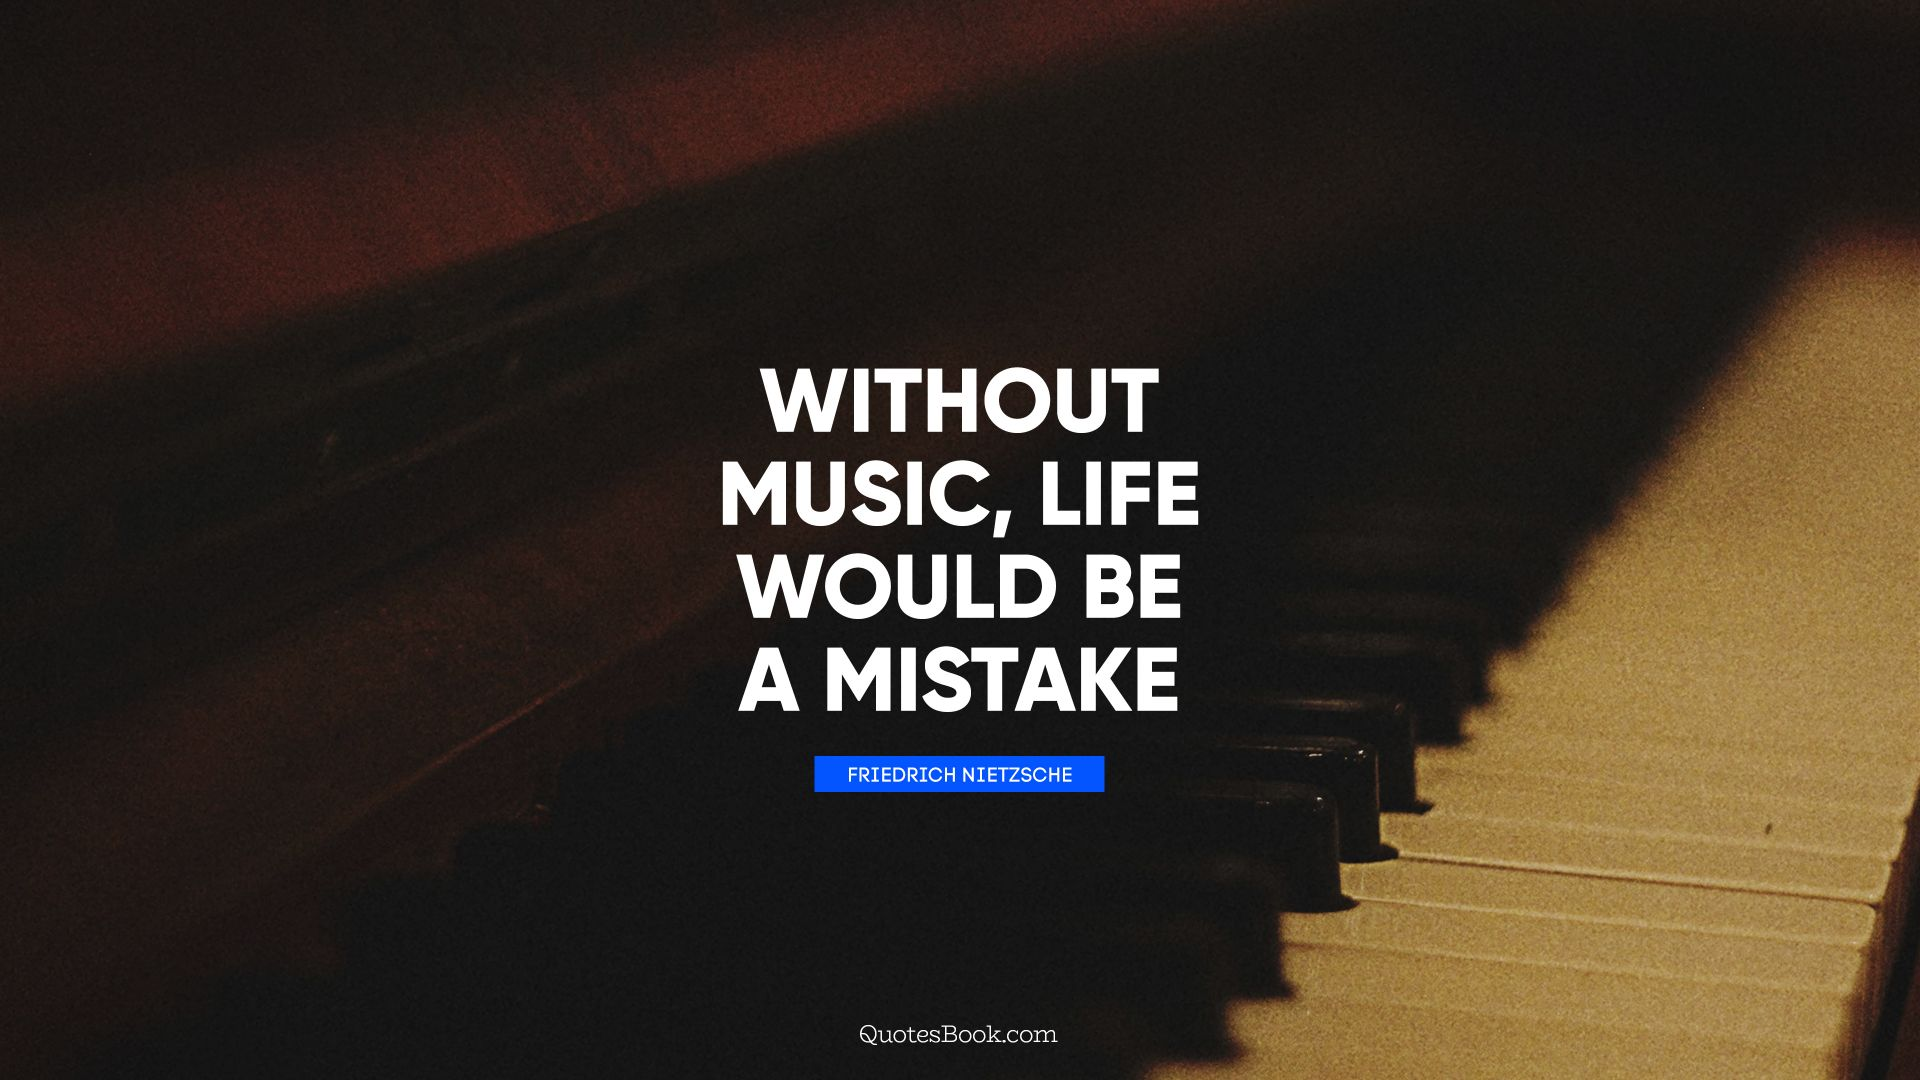 Without music, life would be a mistake. - Quote by Friedrich Nietzsche